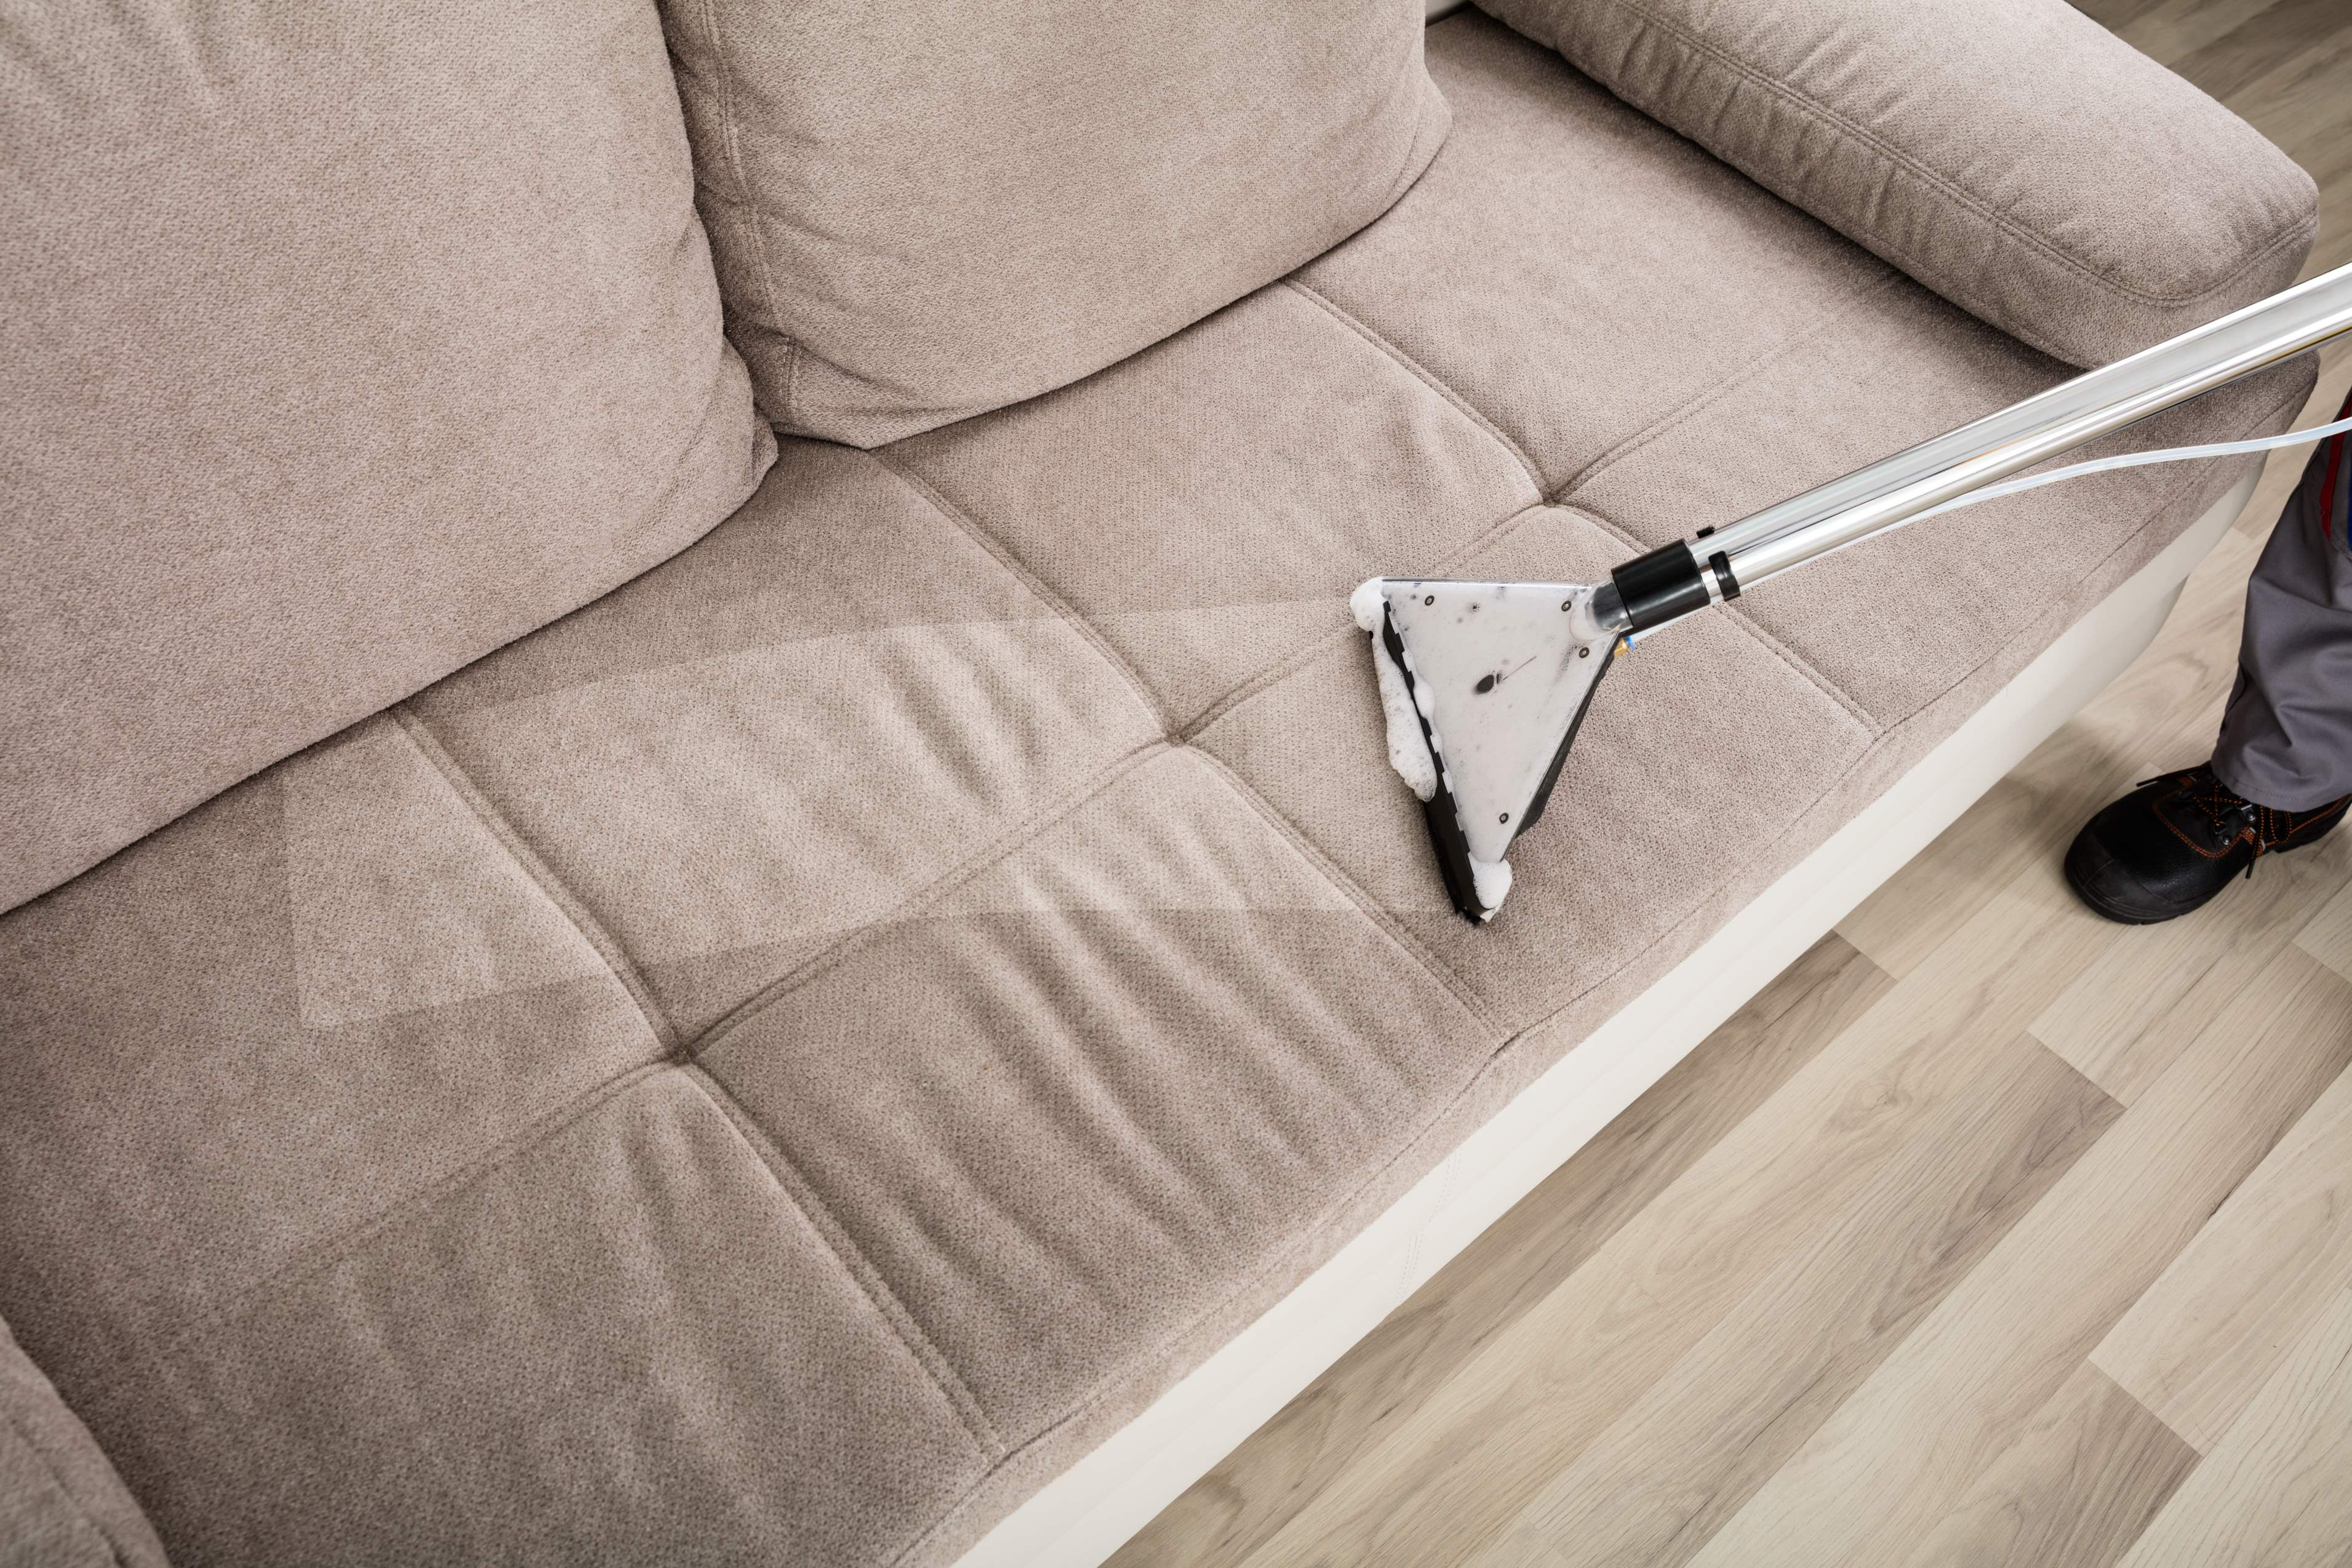 sofa cleaning atlanta luxury leather sofas 5 tips to clean your couch a cleaner life